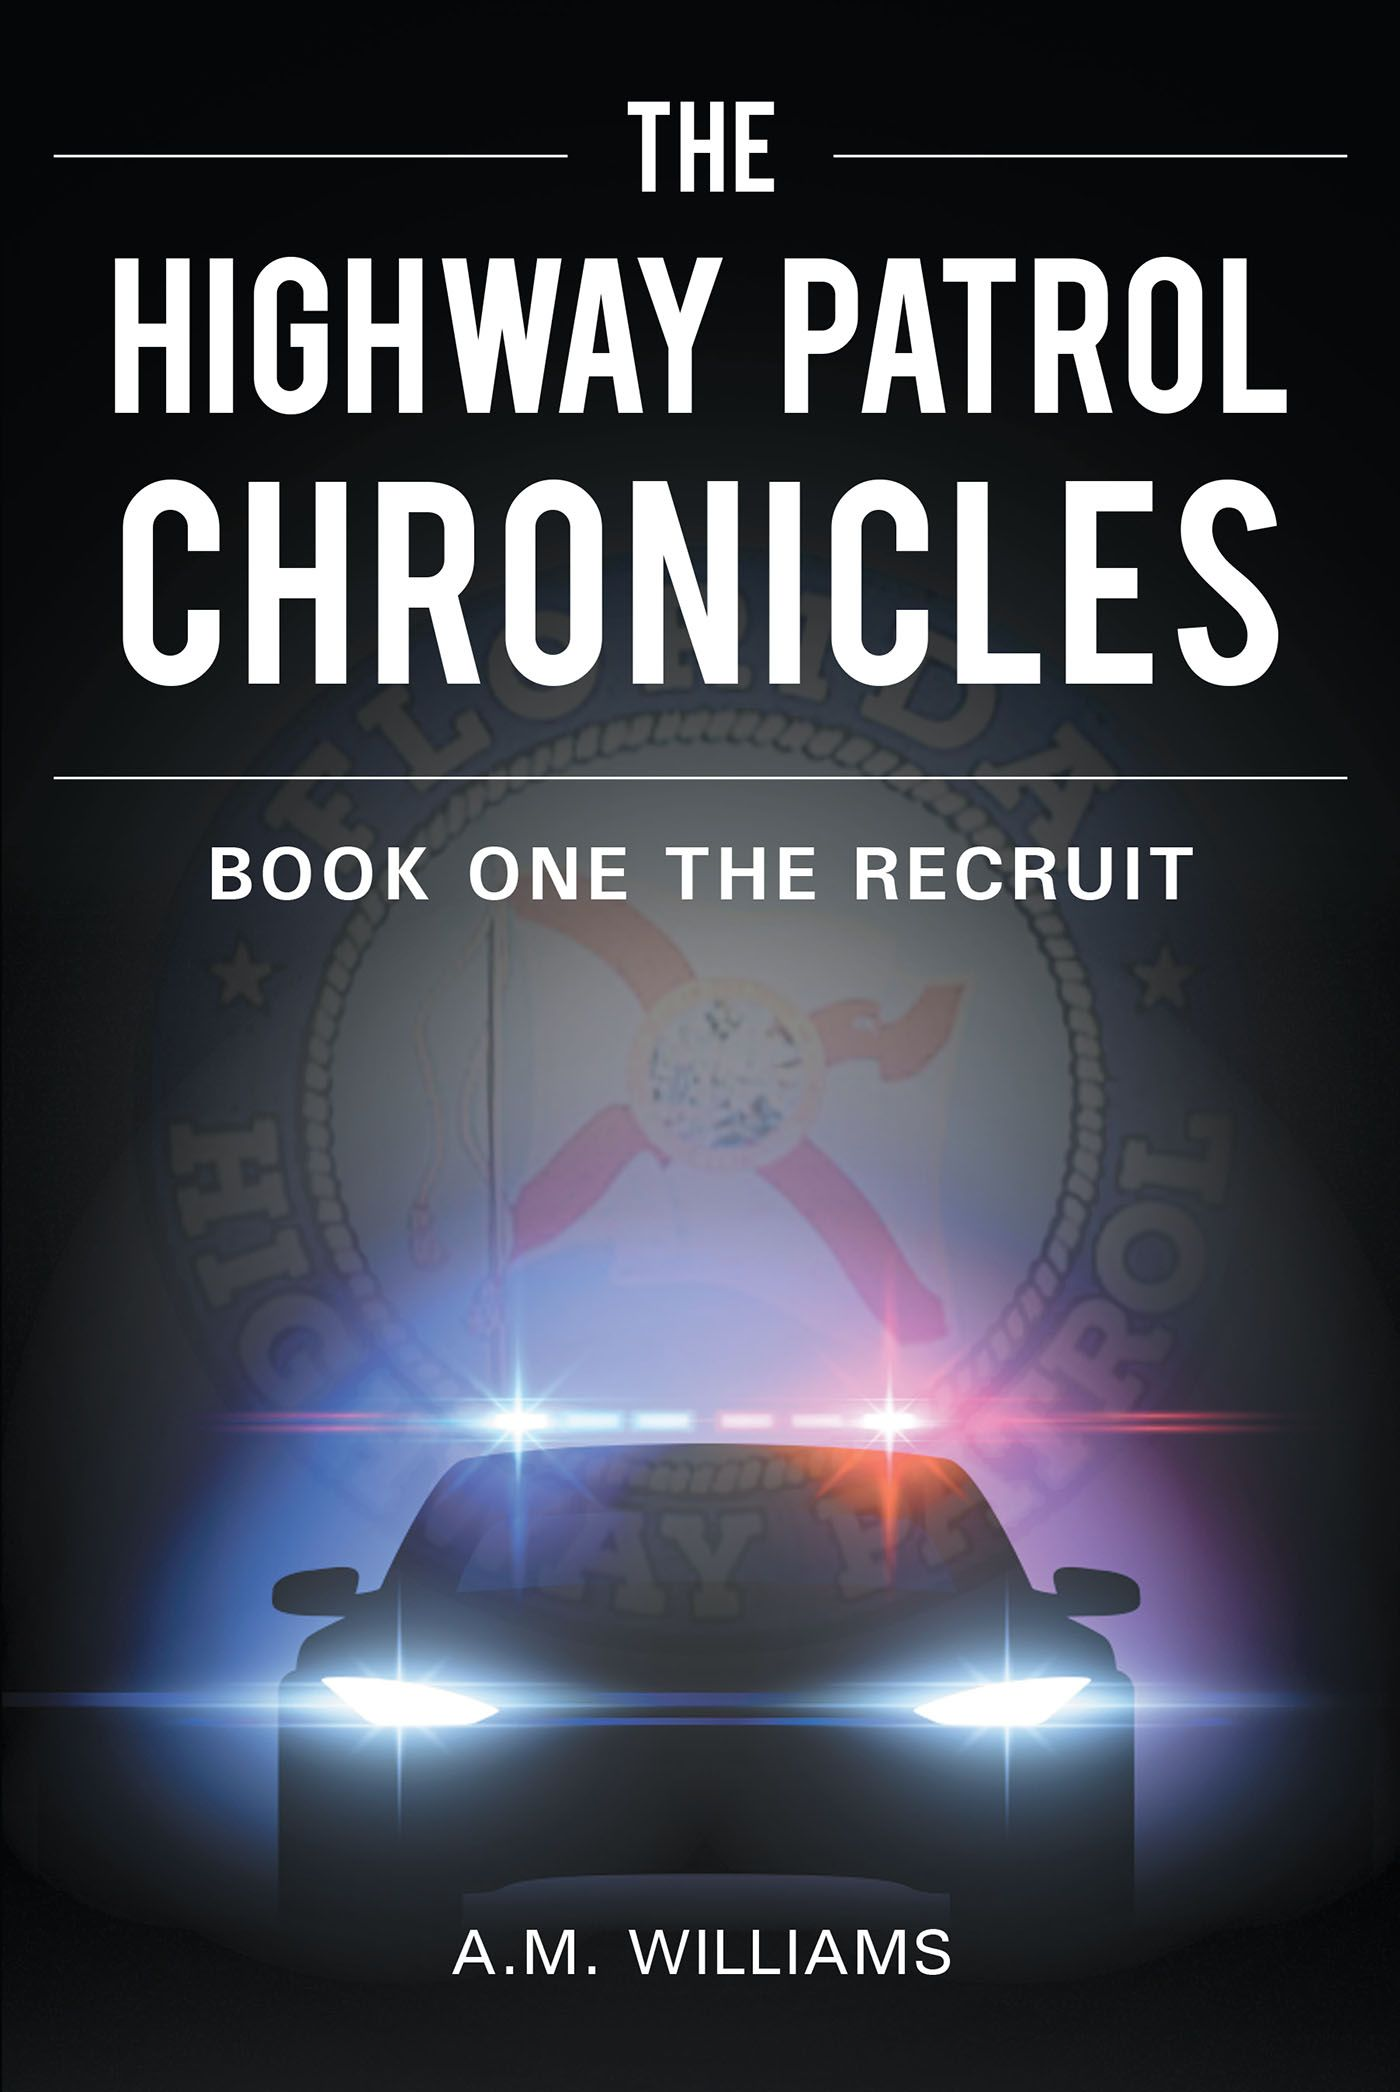 """Books   Page Publishing Author A.M. Williams's new book """"The Highway Patrol Chronicles: The Recruit"""" is the first in a series chronicling the development of a Florida Highway Patrol officer."""